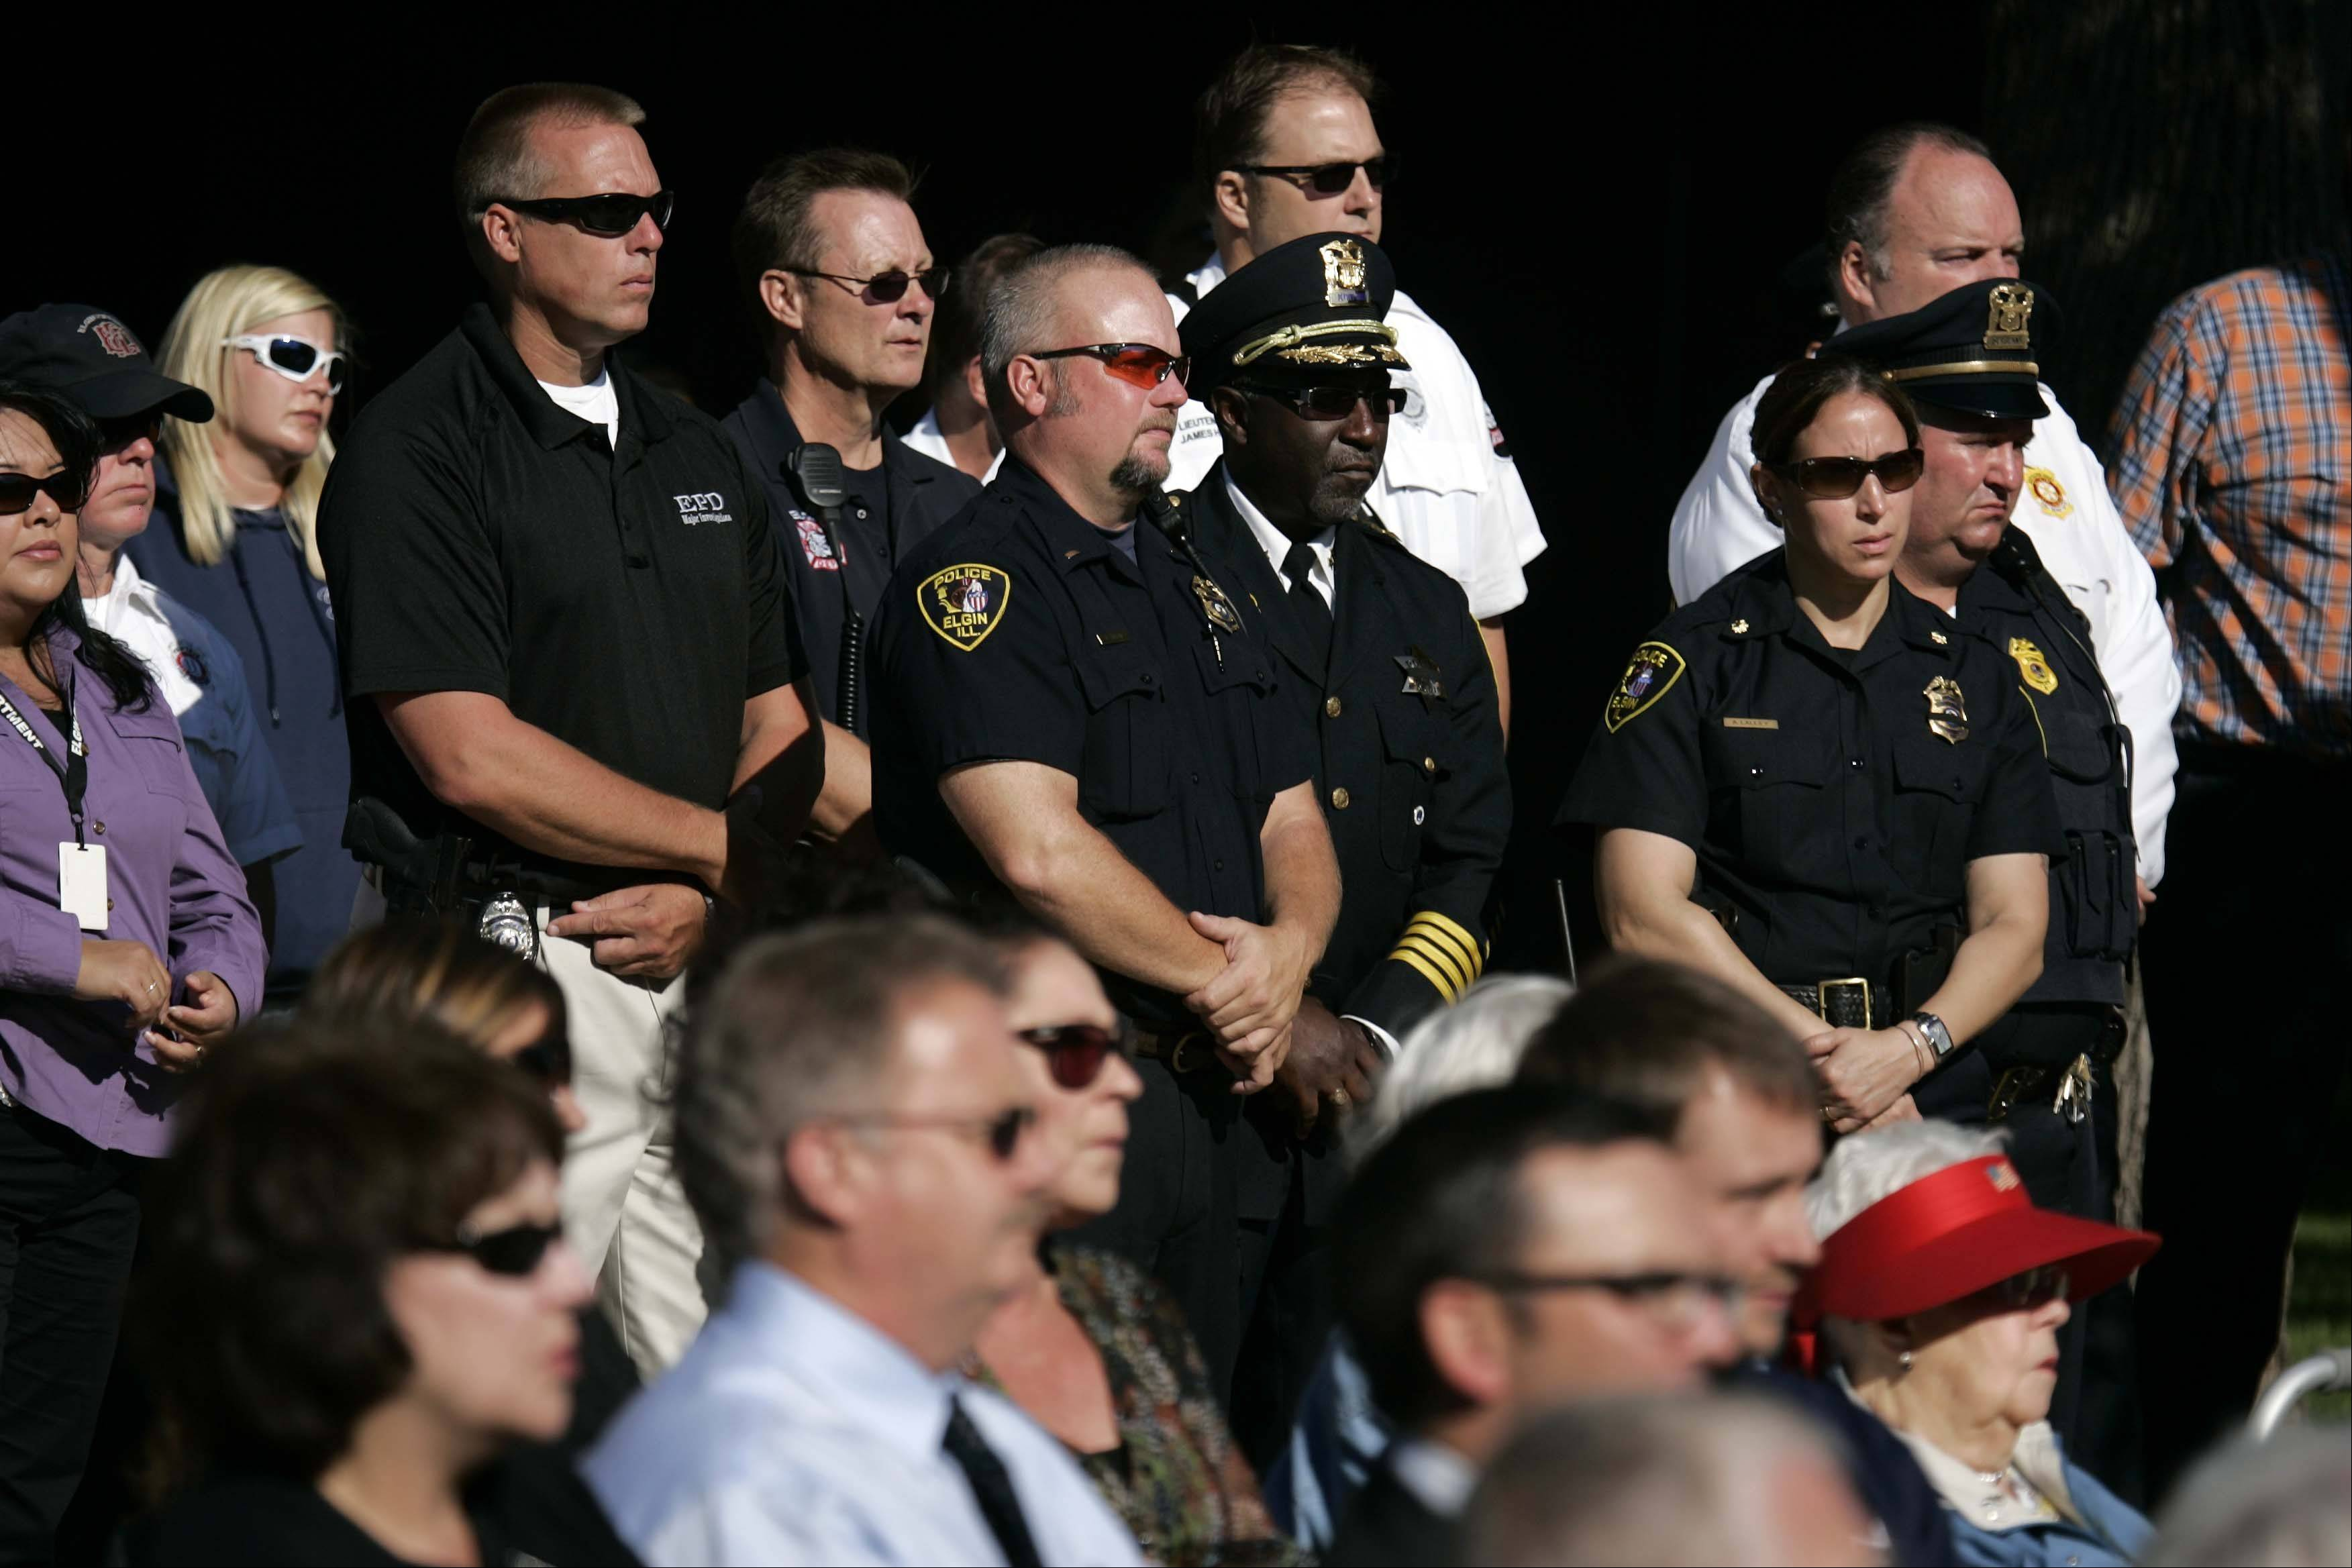 Elgin Police and fire personnel during the 9/11 ceremony Tuesday at the Elgin City Plaza.